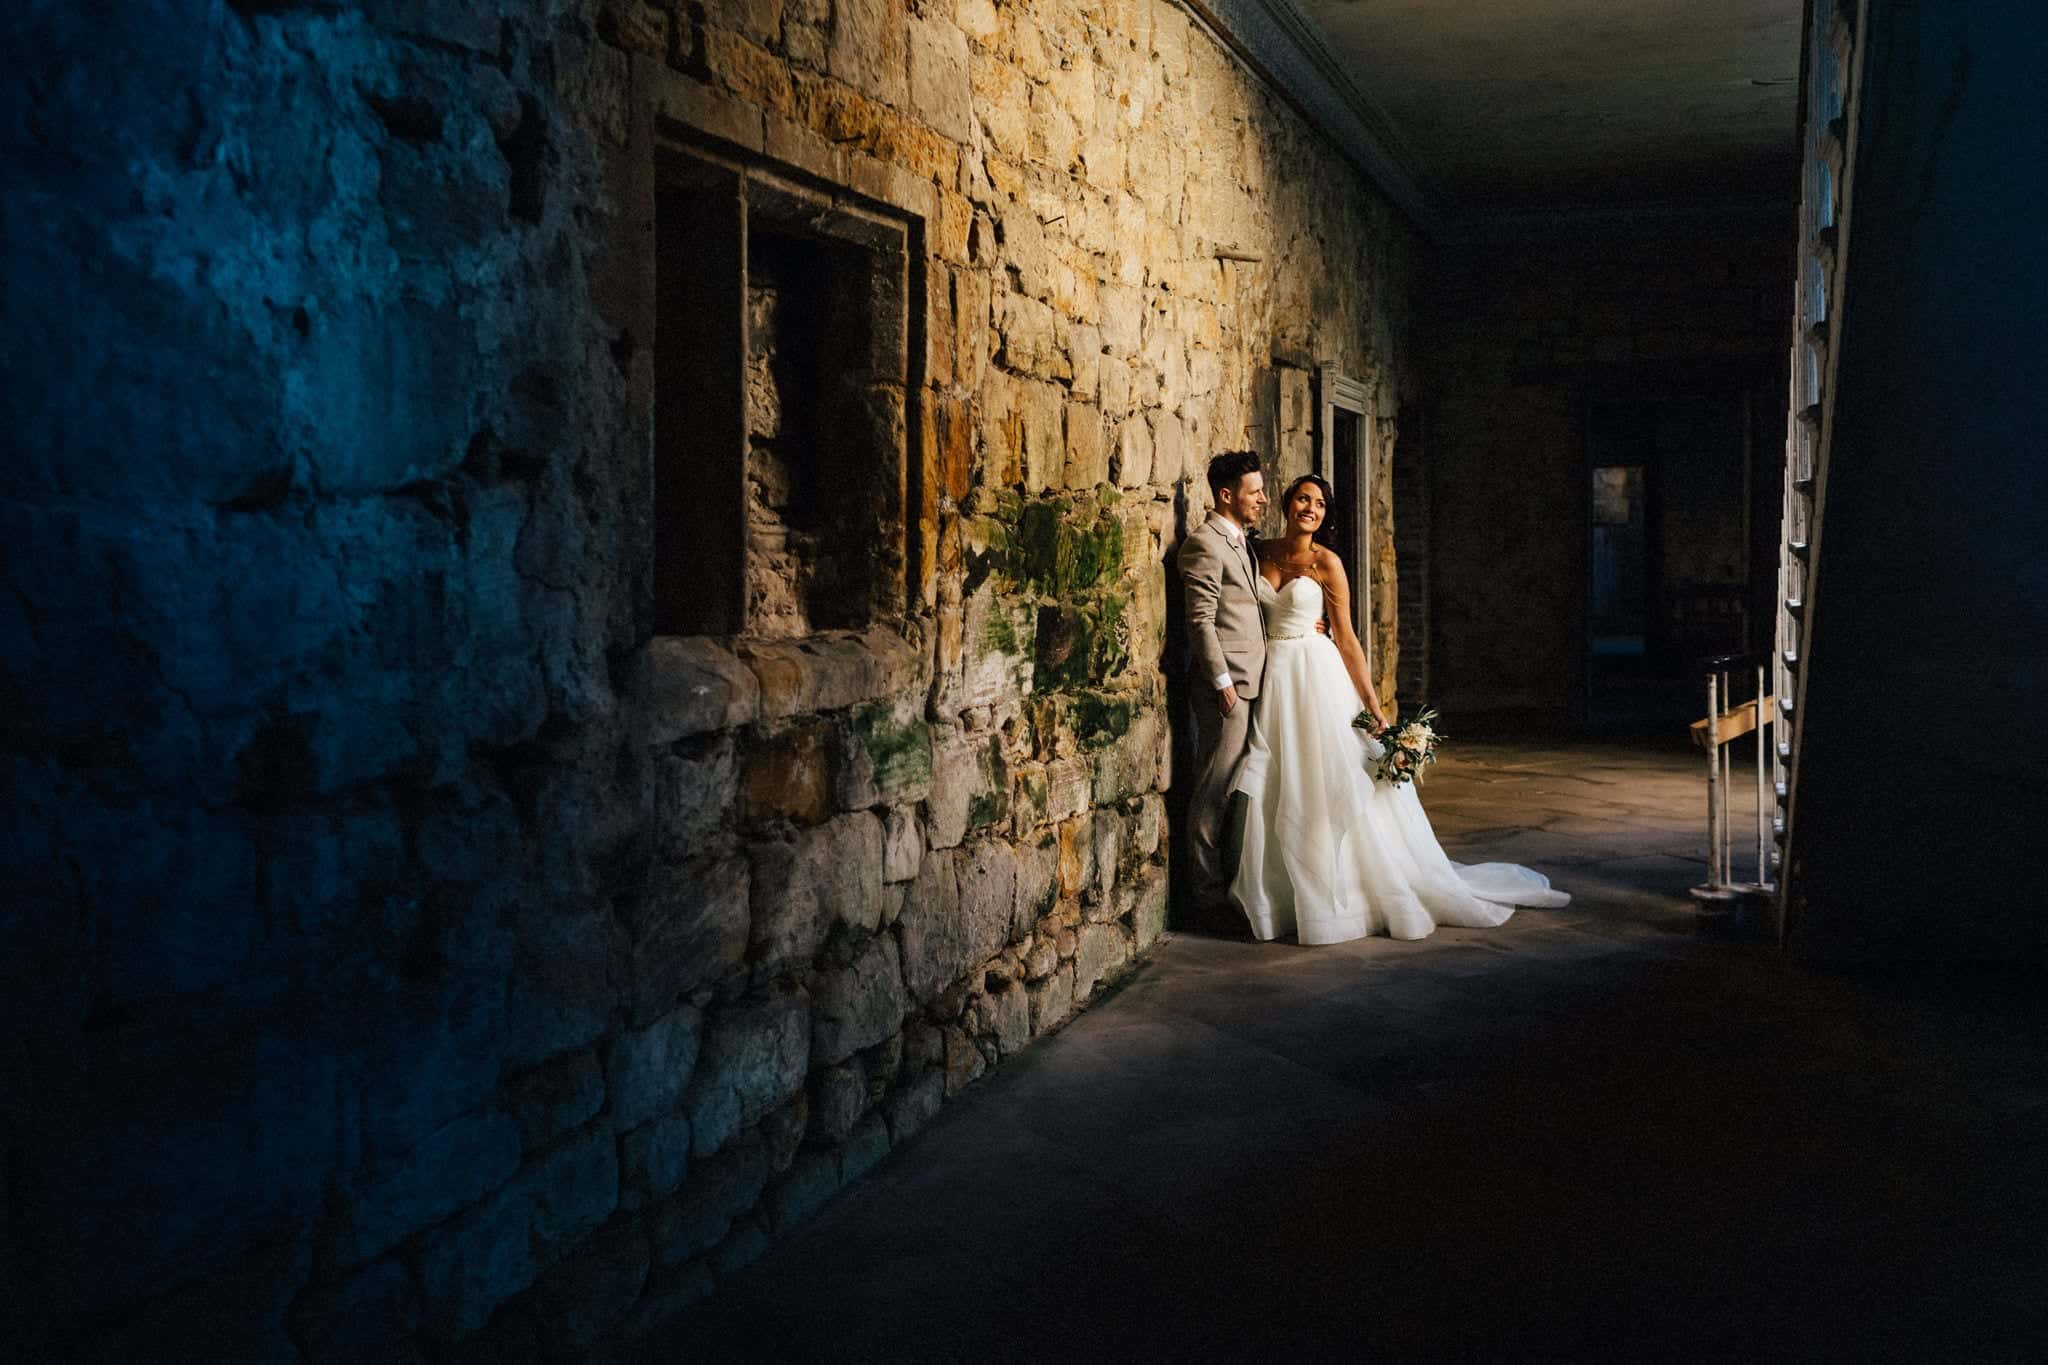 Brinkburn Priory wedding photography | Andy Turner